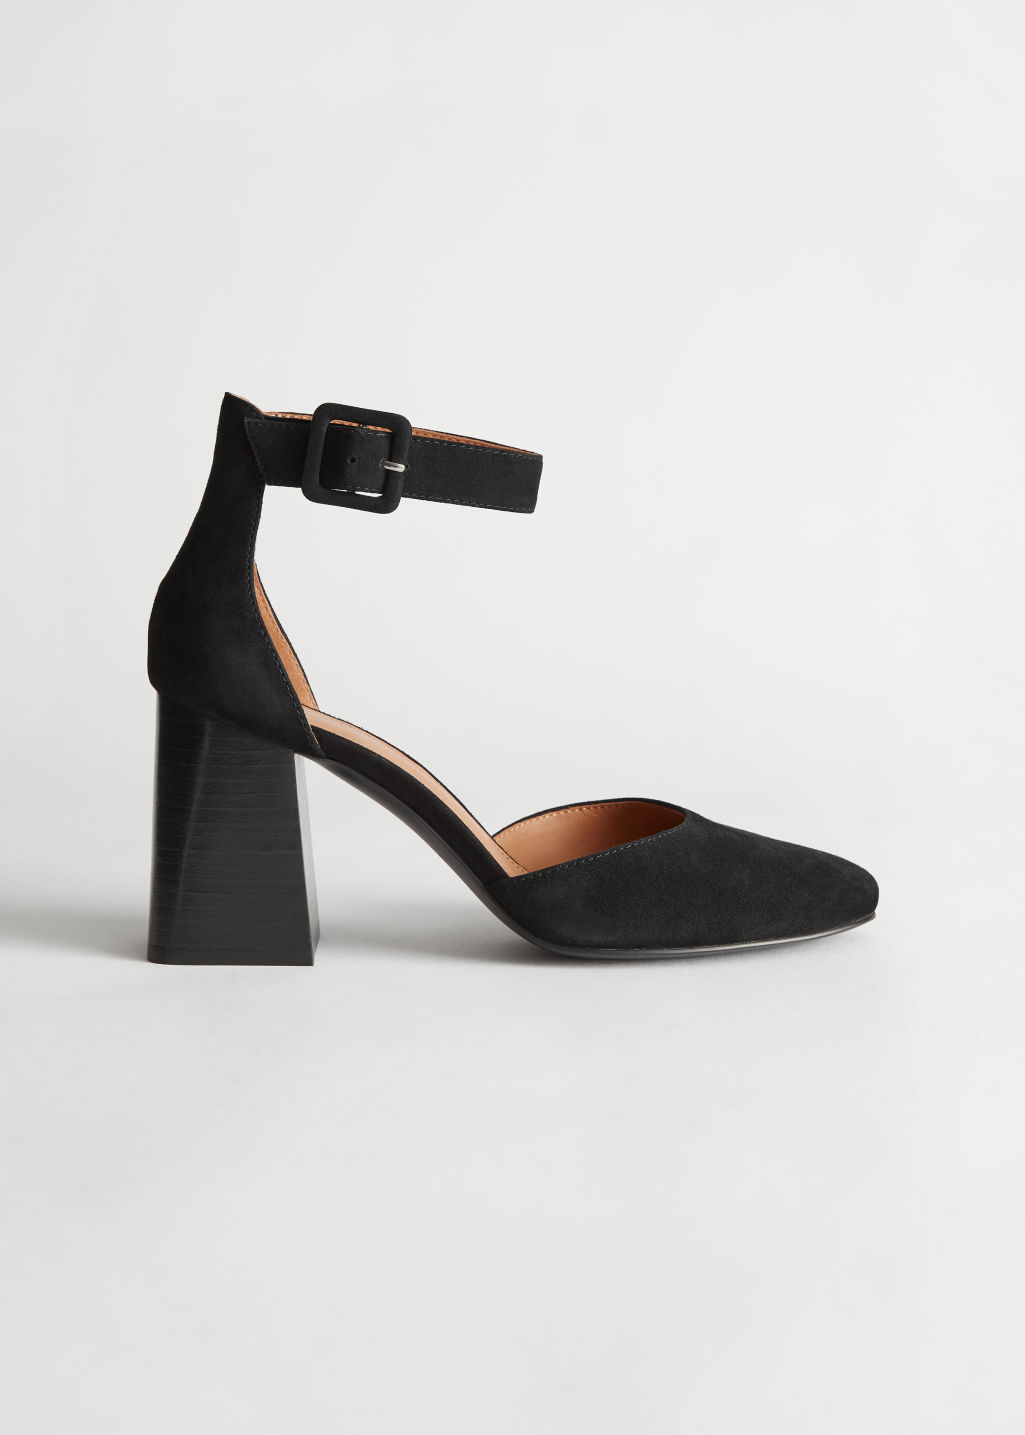 StillLife Side Image of Stories Suede Ankle Strap Heel in Black